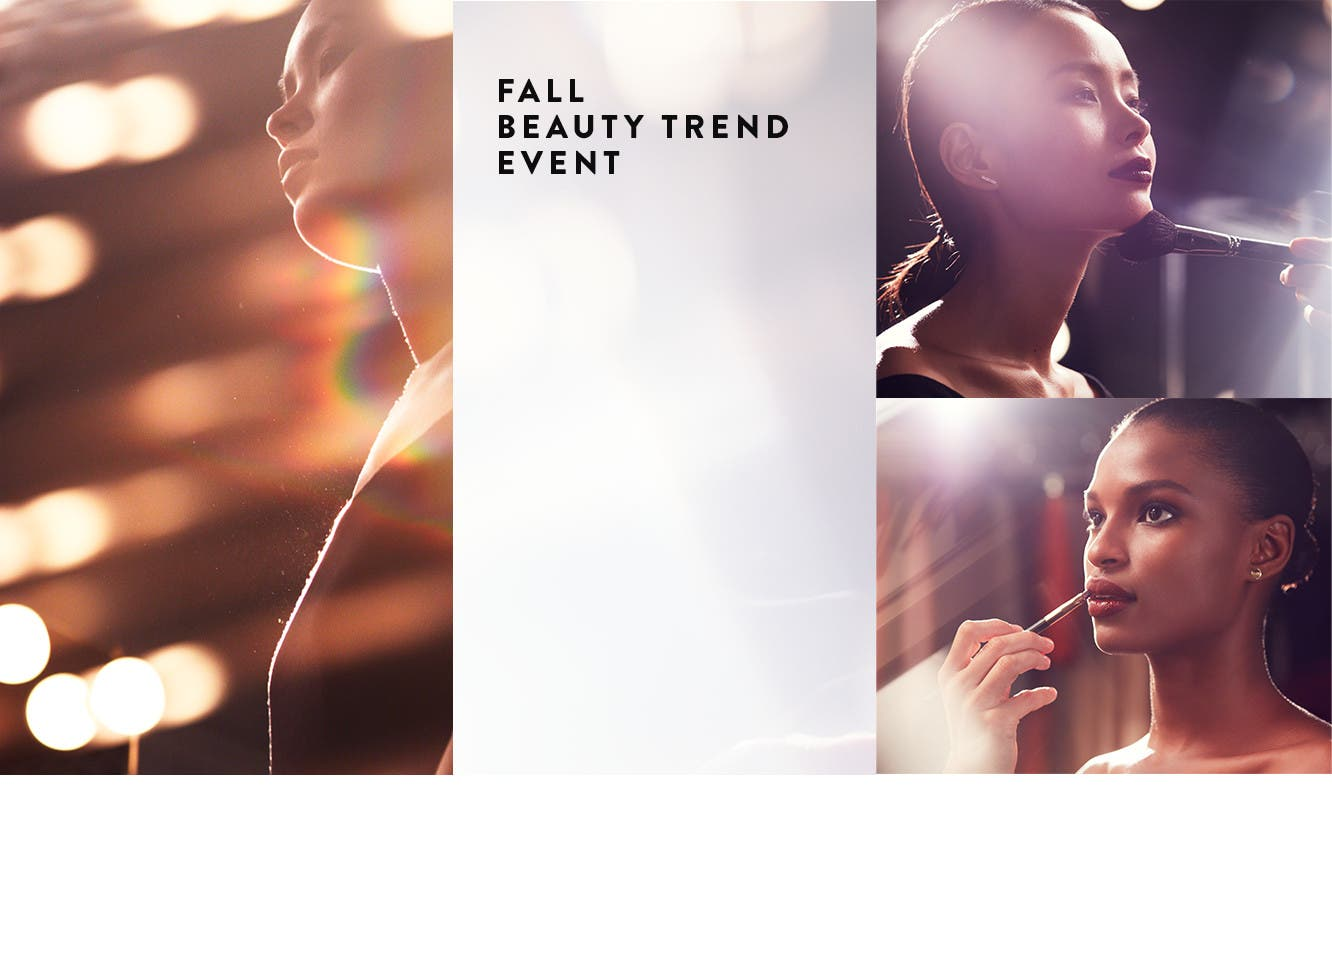 Fall Beauty Trend Event.